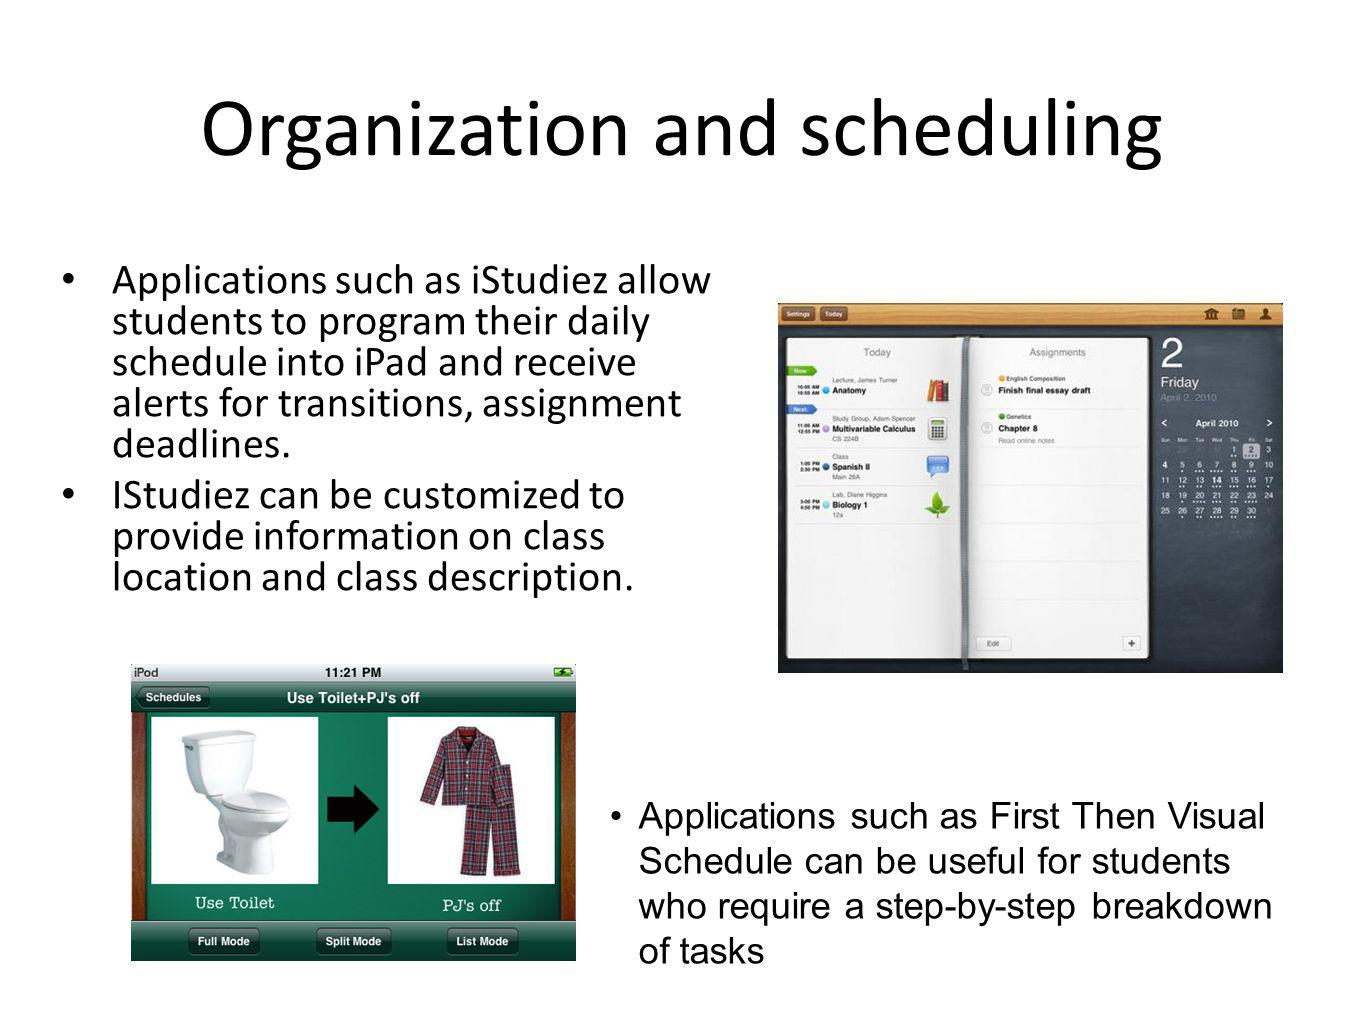 Organization and scheduling Applications such as iStudiez allow students to program their daily schedule into iPad and receive alerts for transitions, assignment deadlines.